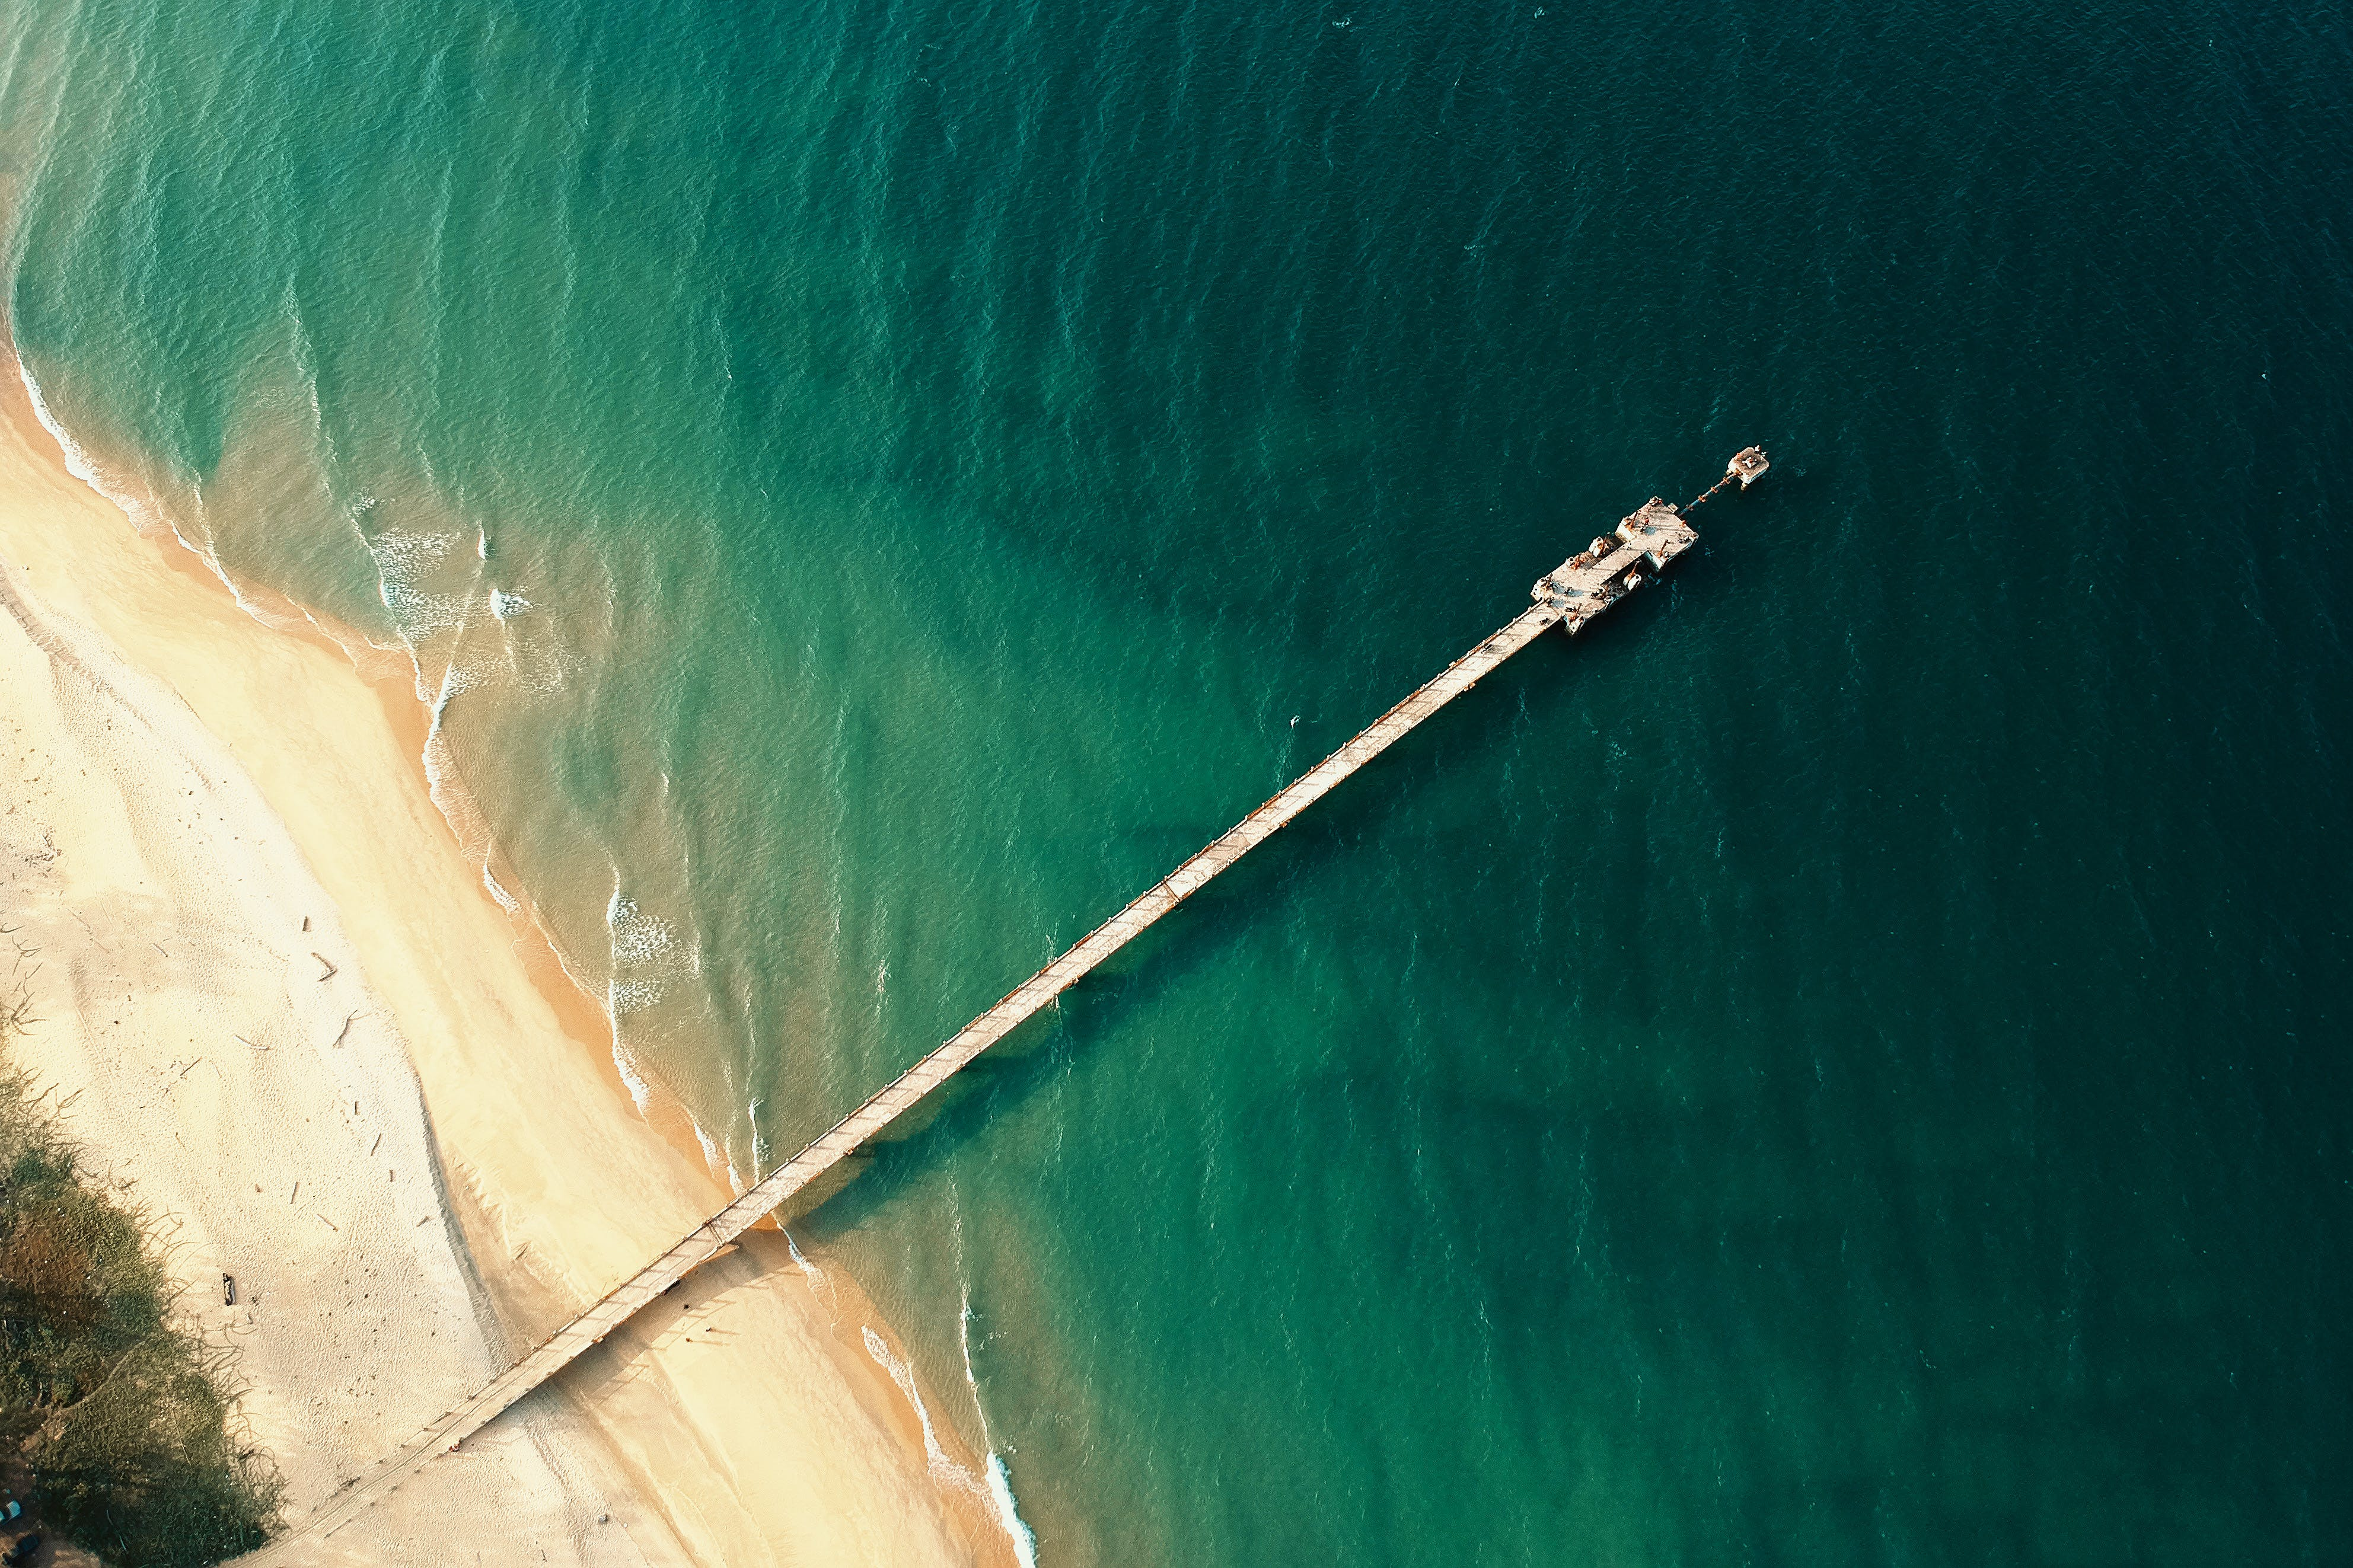 Aerial Photography of Wooden Dock Near Seashore